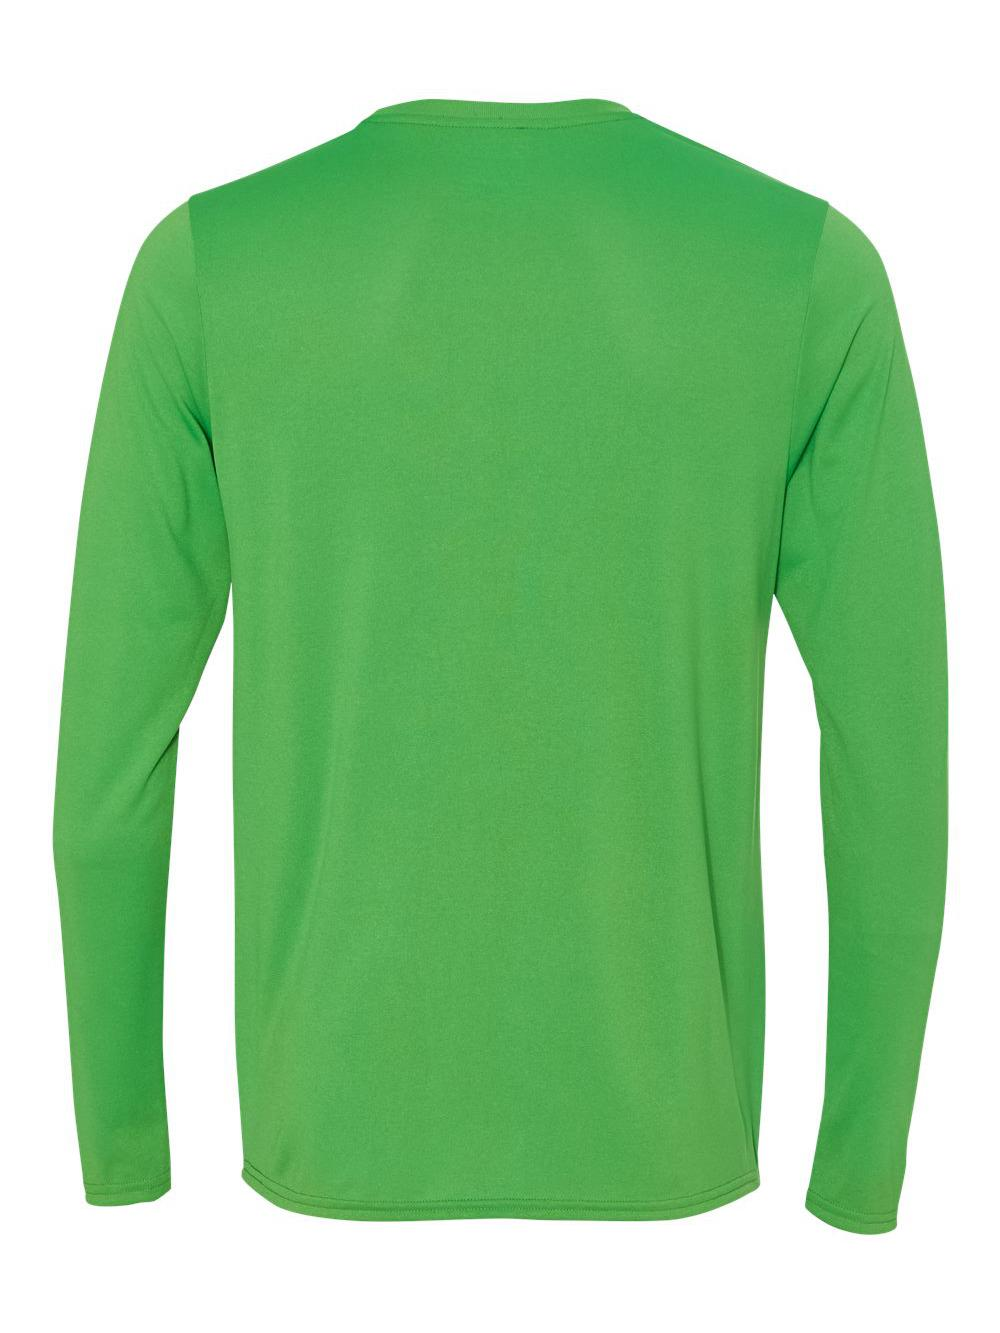 Gildan-Tech-Performance-Long-Sleeve-T-Shirt-47400 thumbnail 7